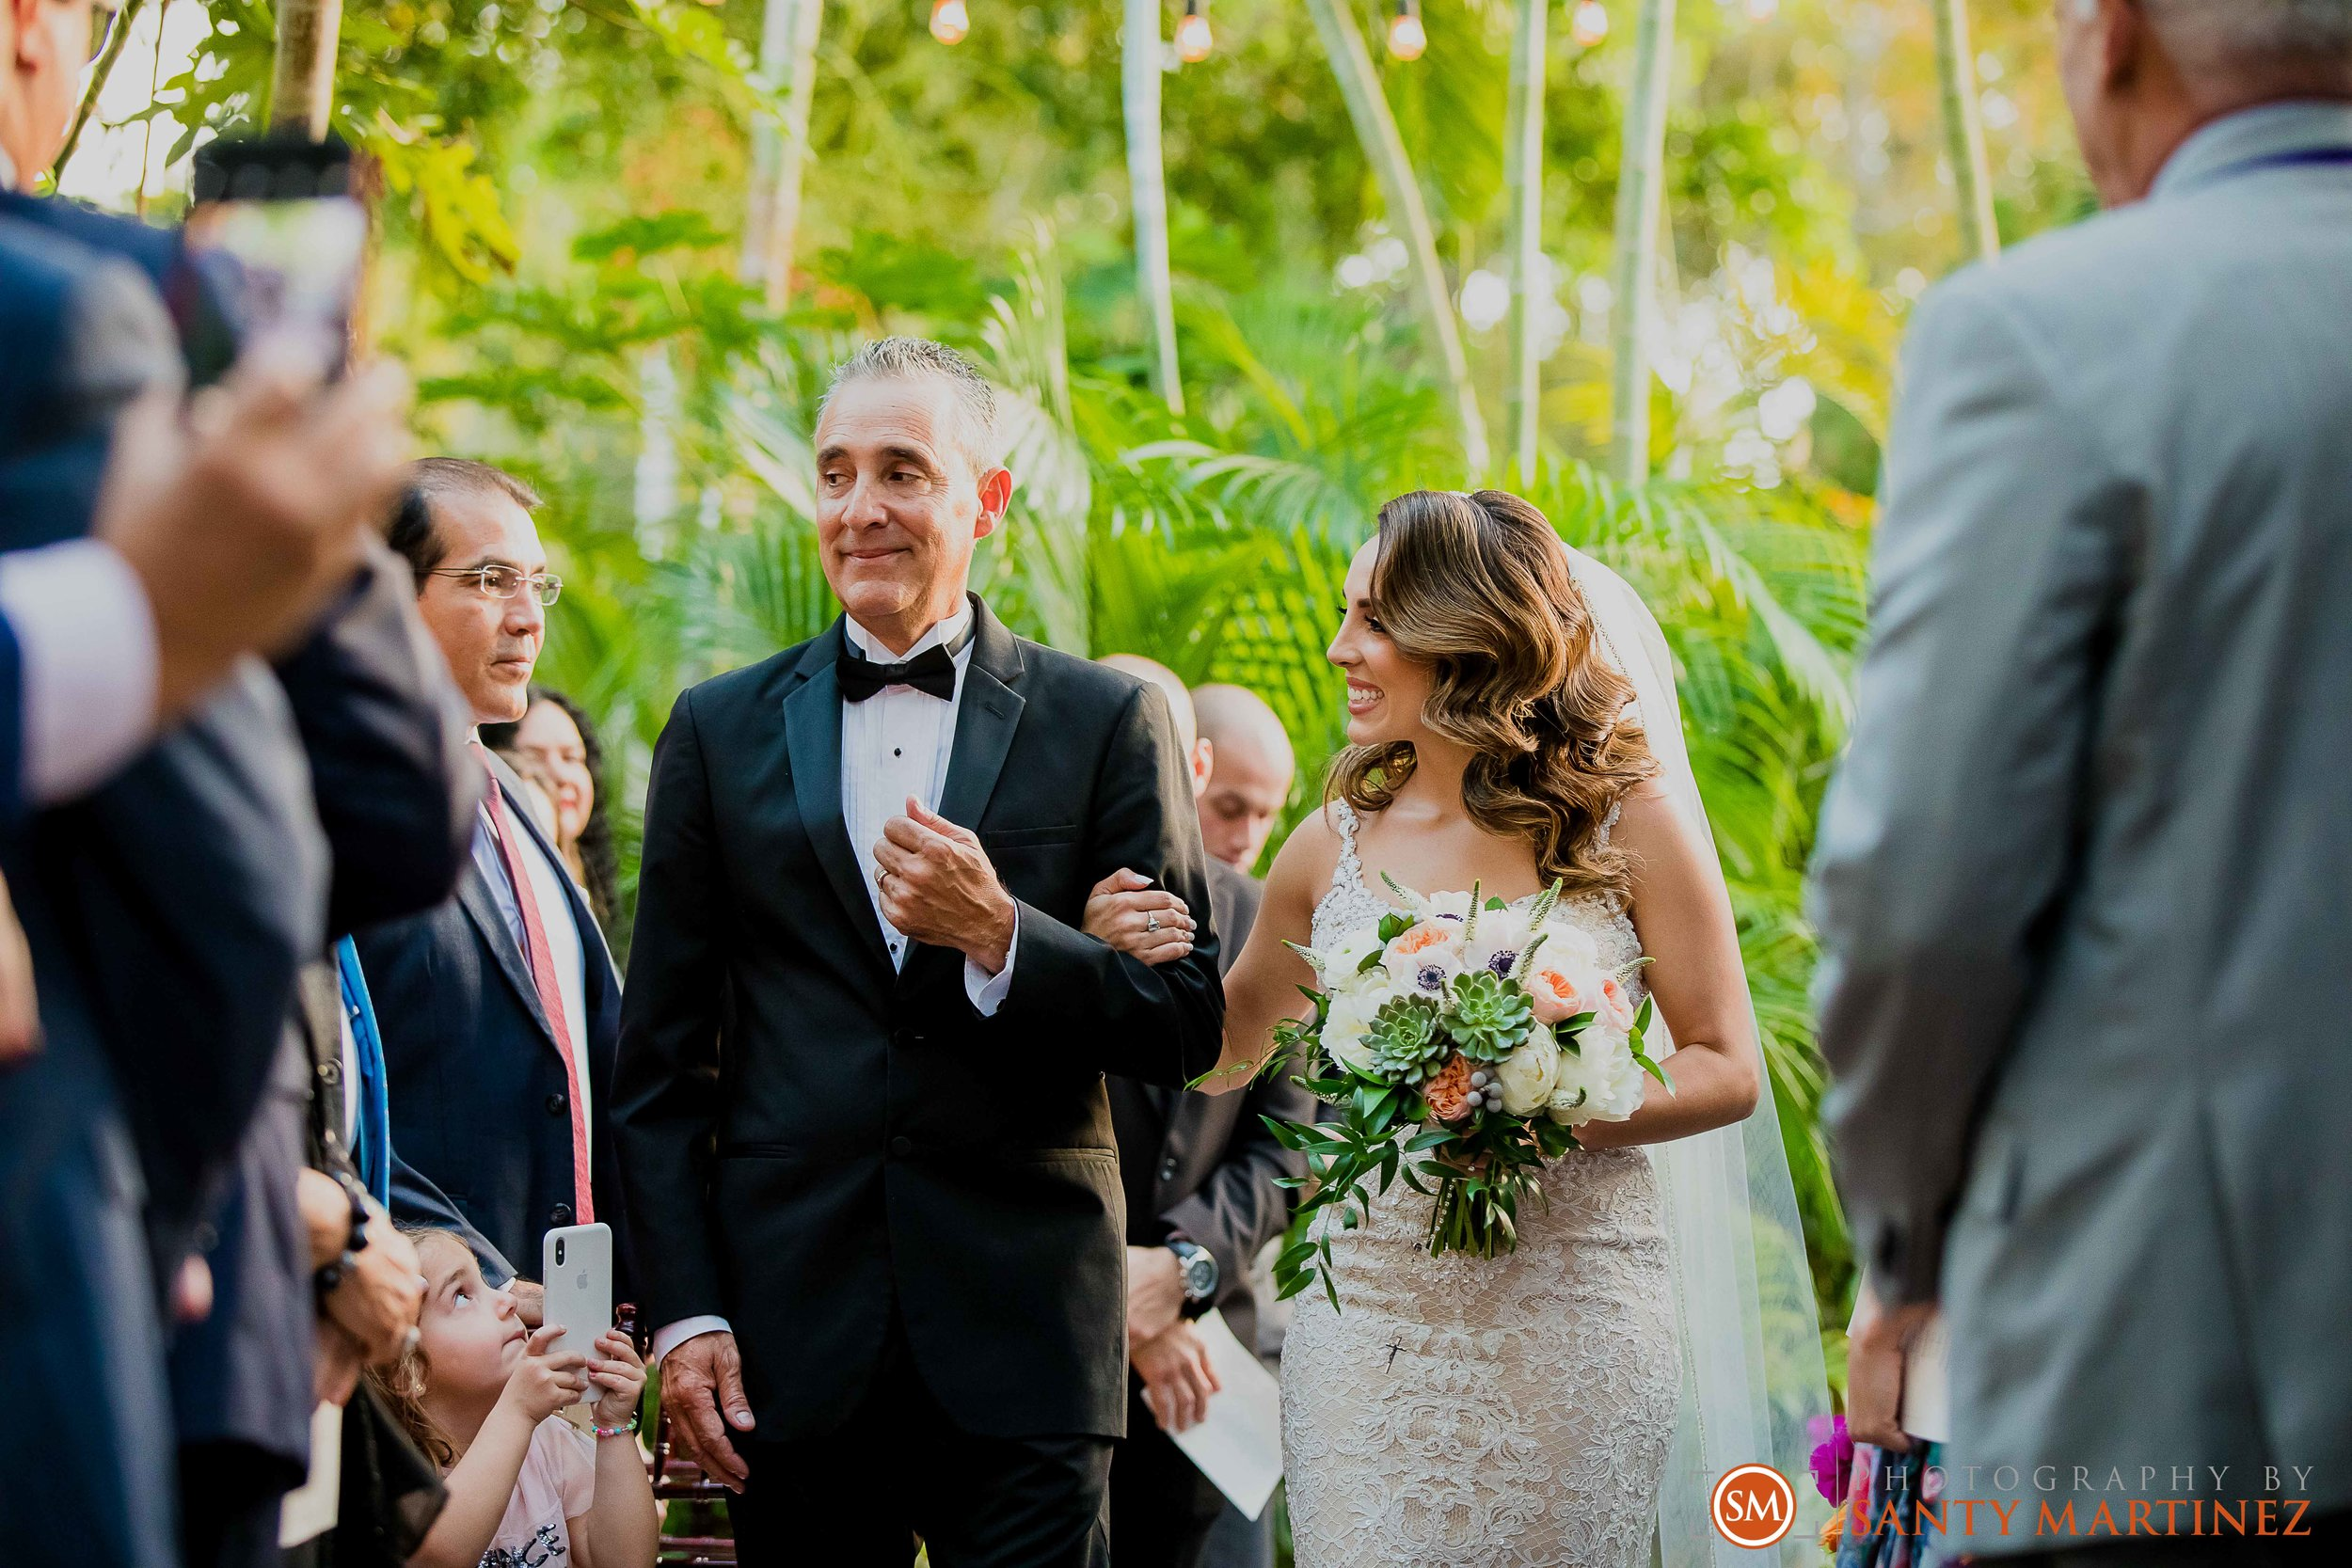 Wedding+at+the+The+Miller+Plantation+-+Santy+Martinez-35.jpg